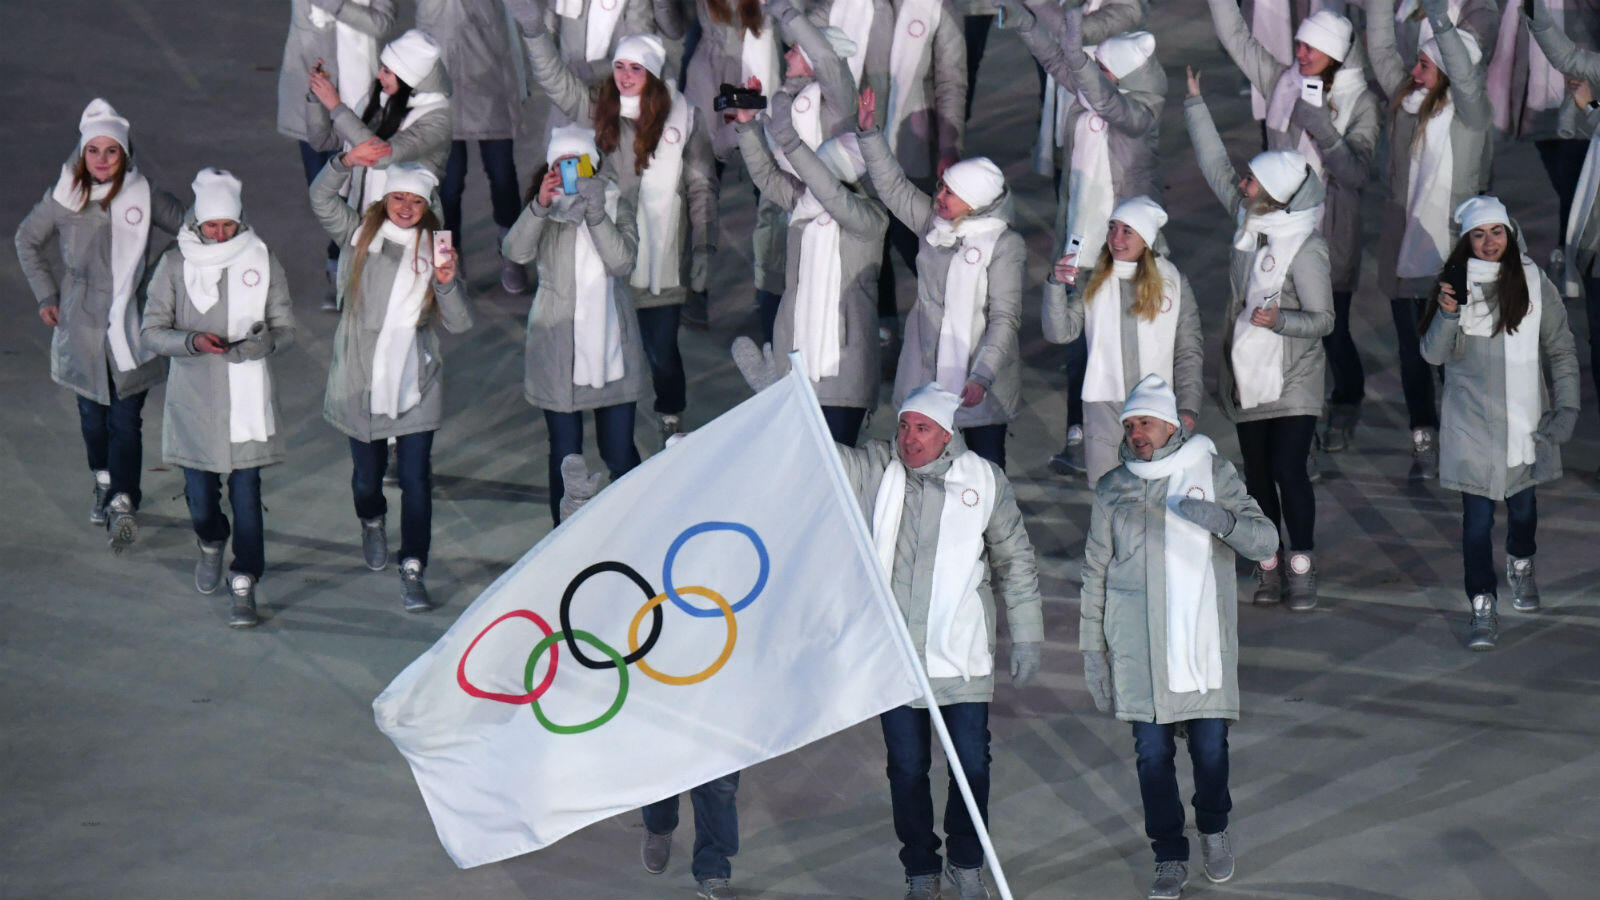 During the parade of delegations, Russian athletes marched under the neutral Olympic banner after Russian athletes were banned due to doping.